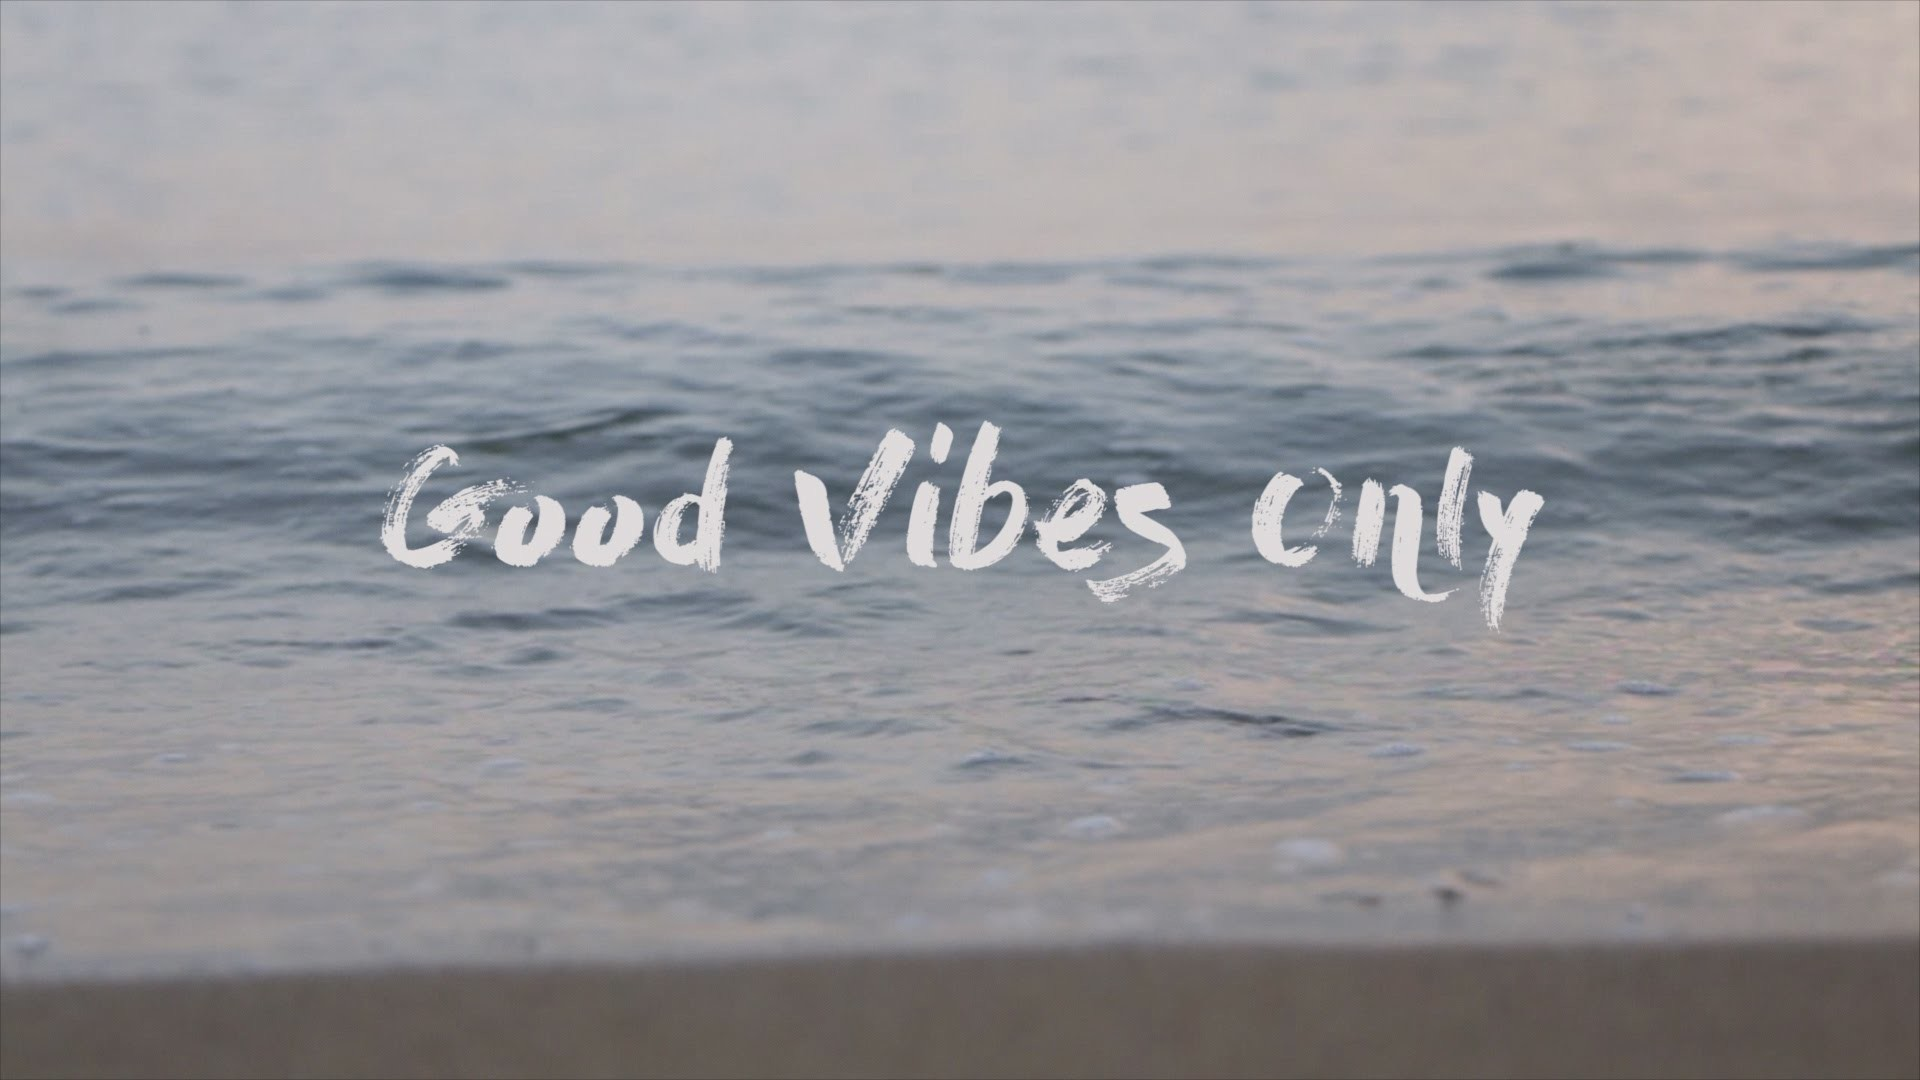 Res: 1920x1080, Good Vibes Only